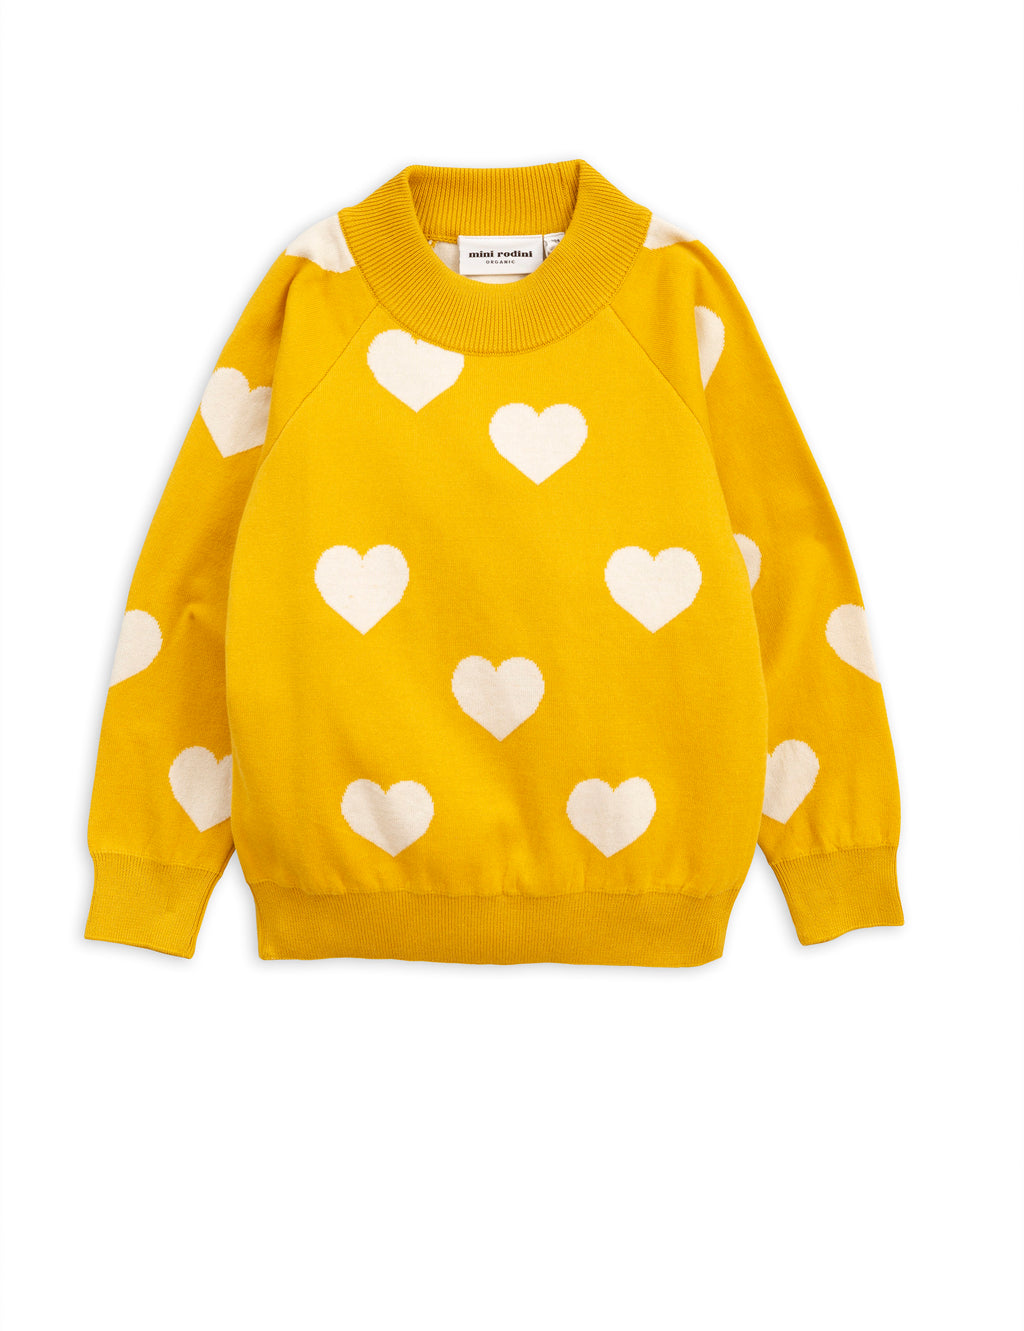 Mini Rodini Knitted Heart Sweater - Yellow